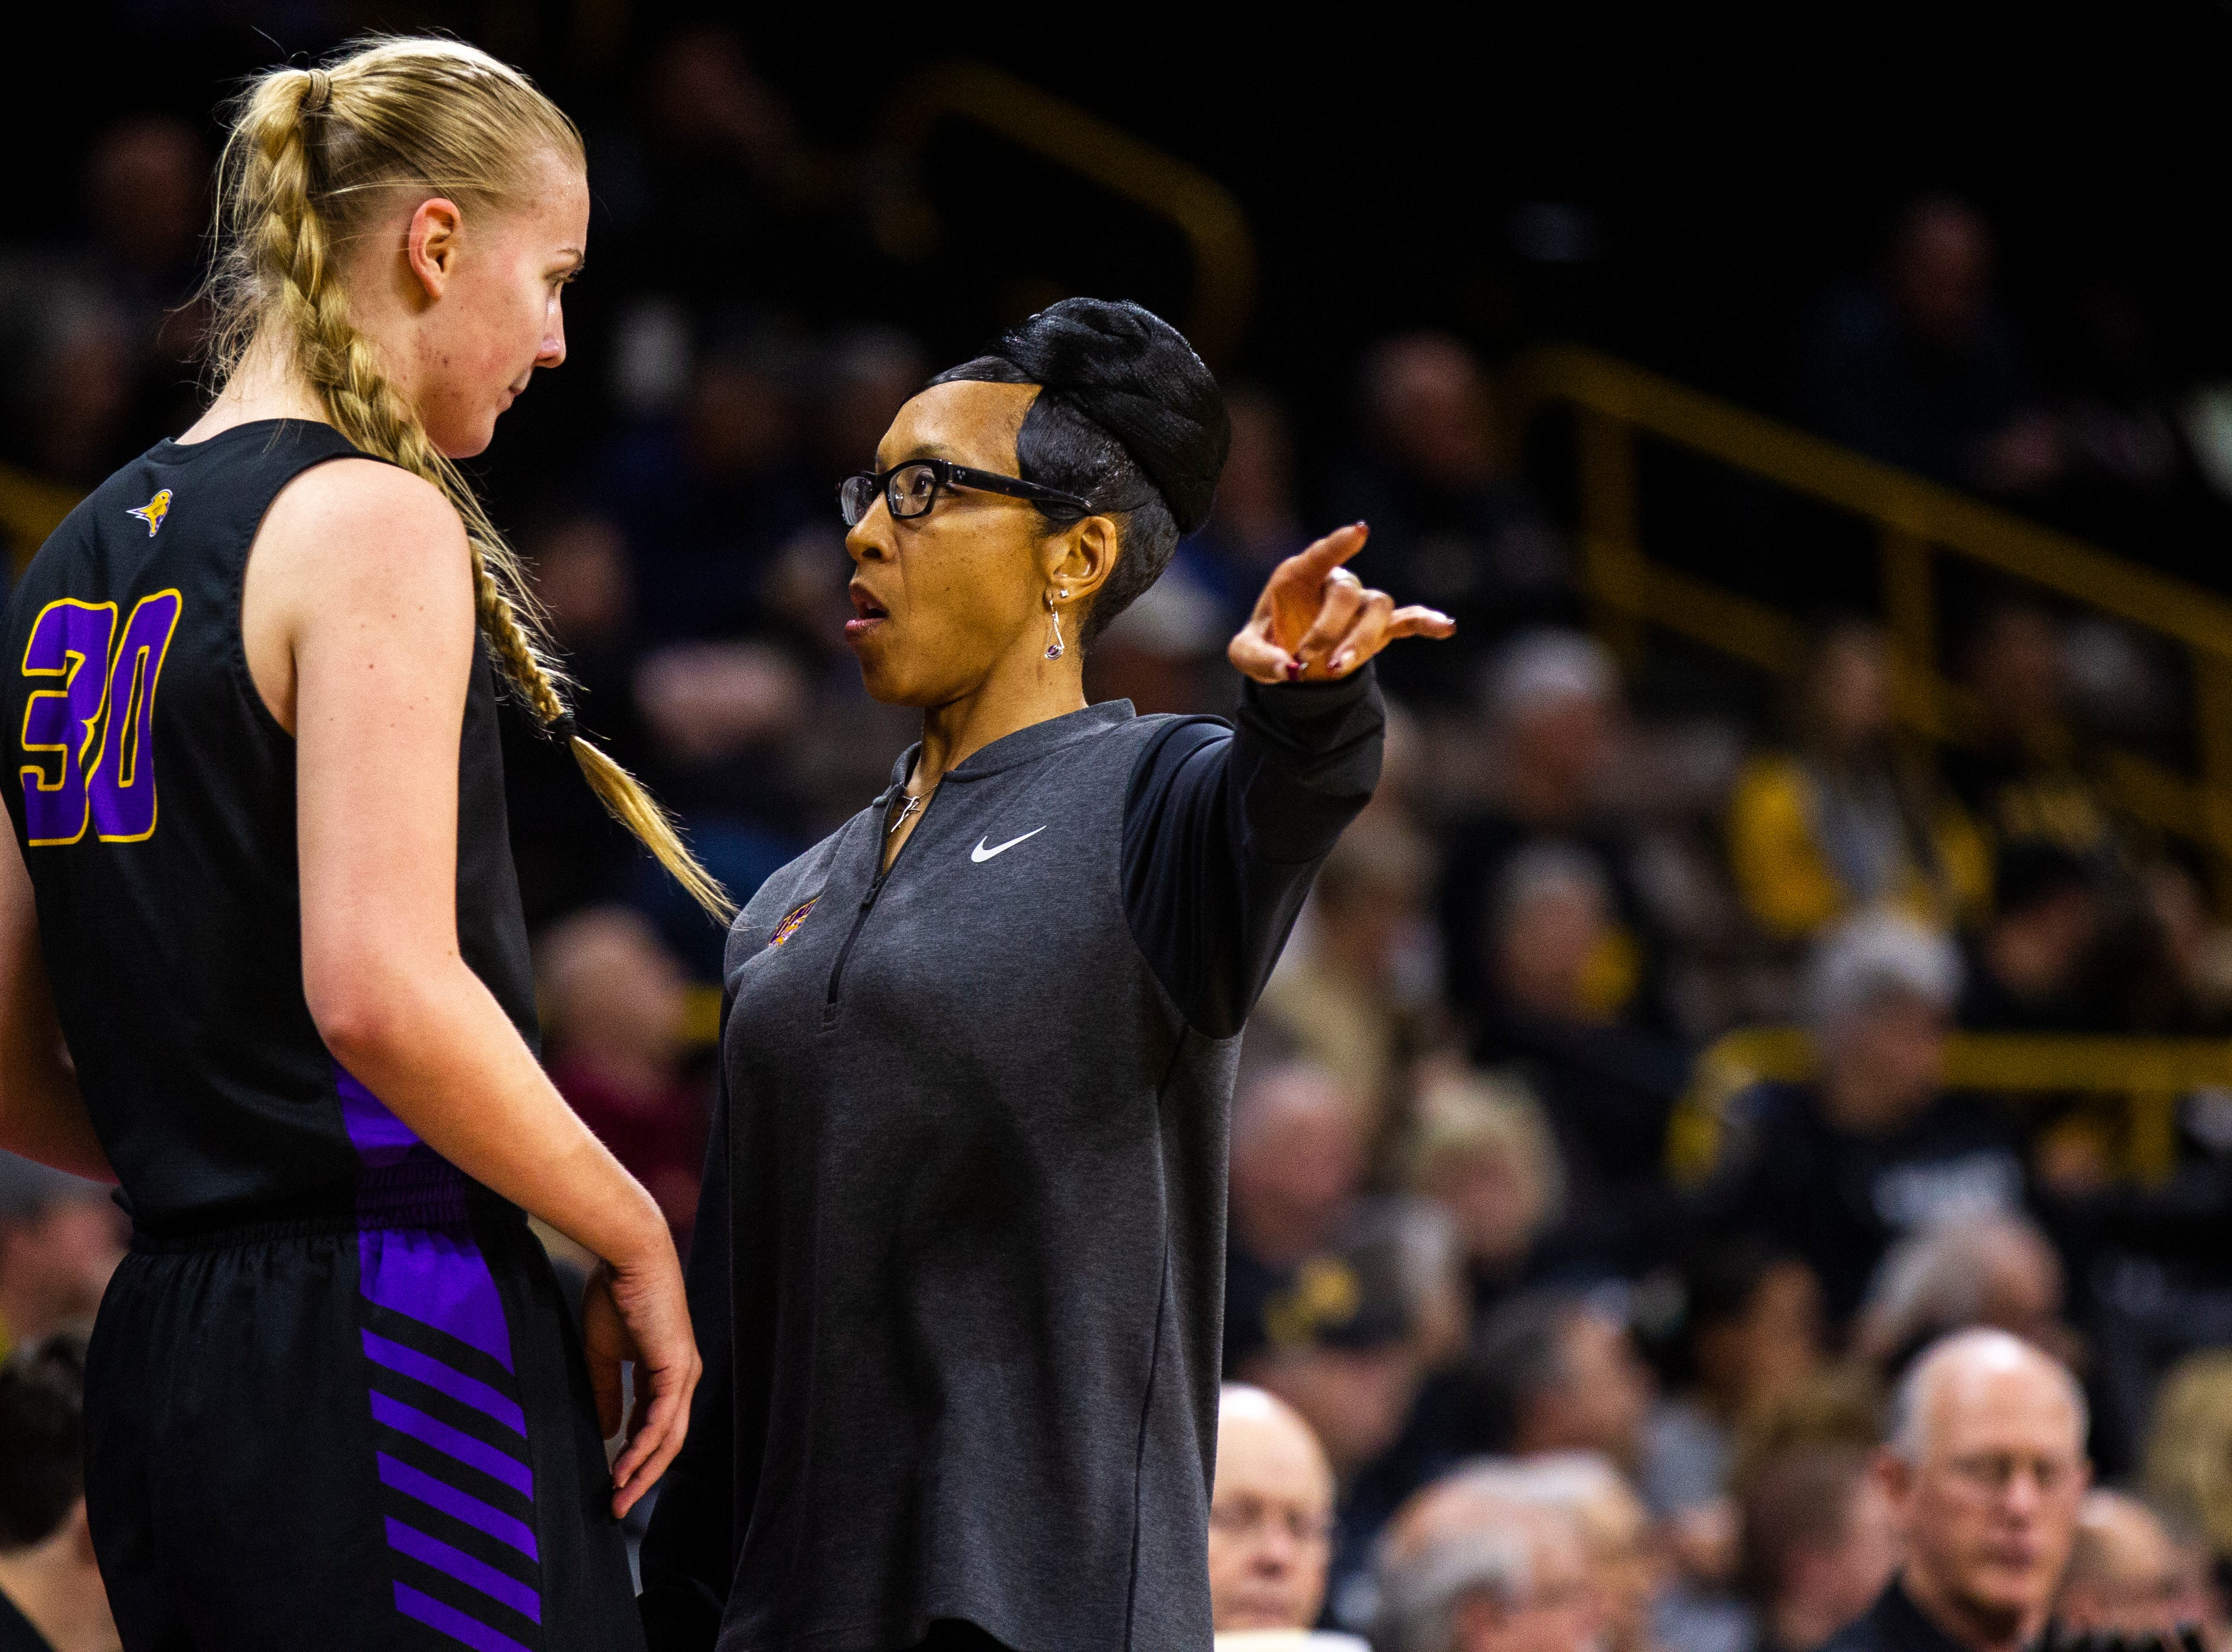 Northern Iowa head coach Tanya Warren talks with Northern Iowa center Cynthia Wolf (30) during a NCAA women's basketball game on Sunday, Dec. 16, 2018, at Carver-Hawkeye Arena in Iowa City.